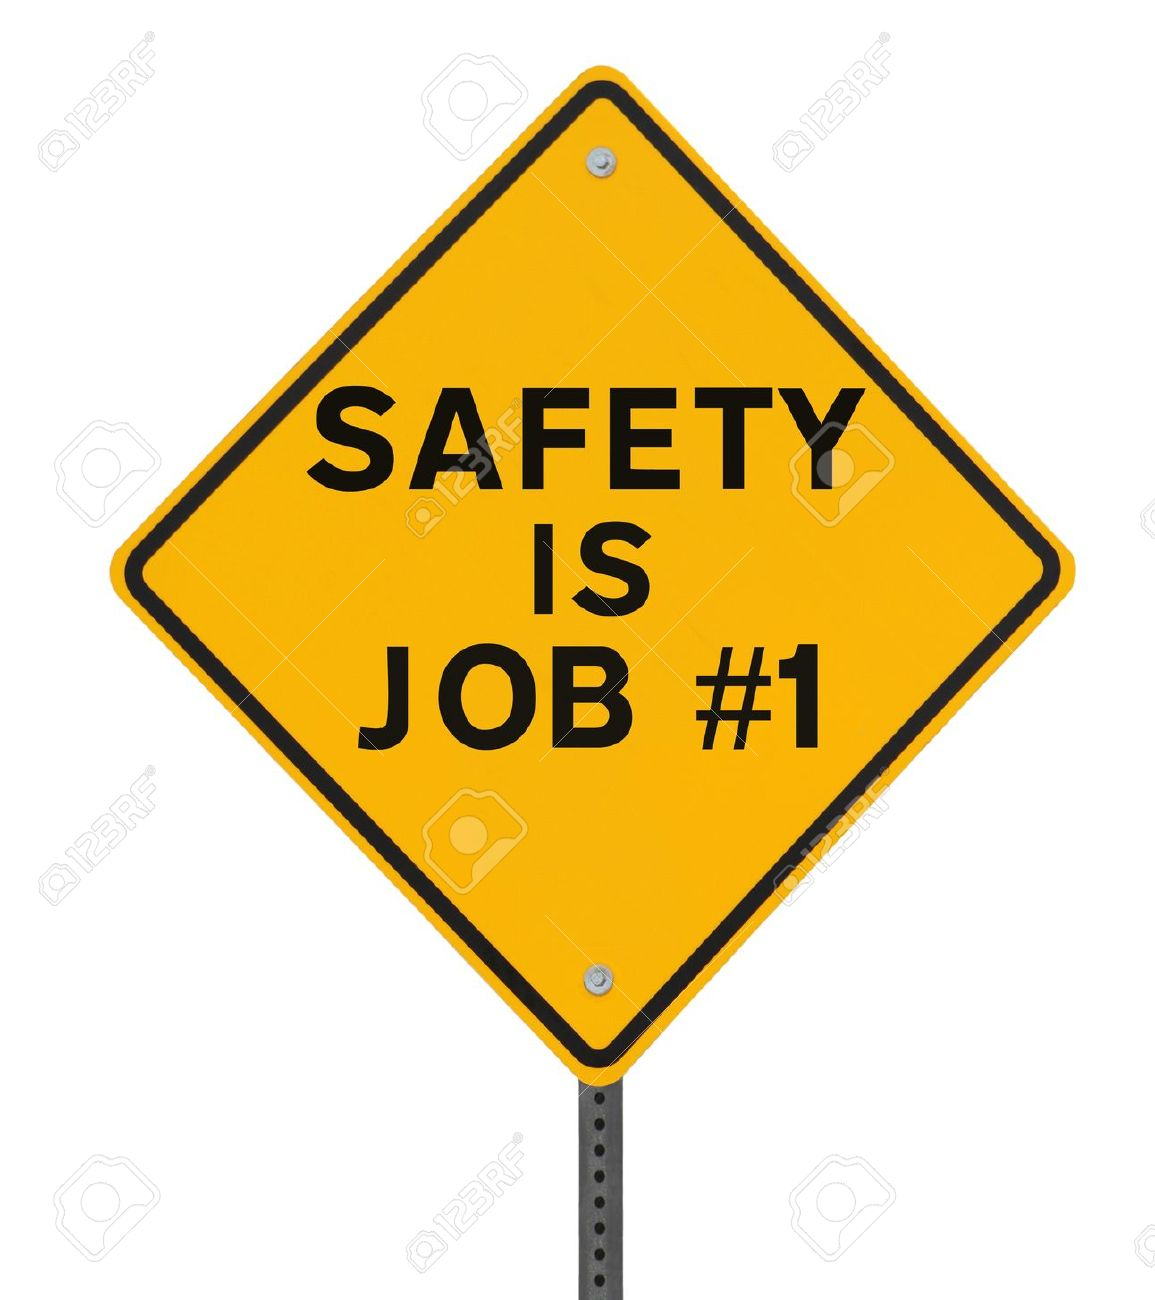 Warehouse clipart workplace safety Clipart Safety Safety clipart Clip